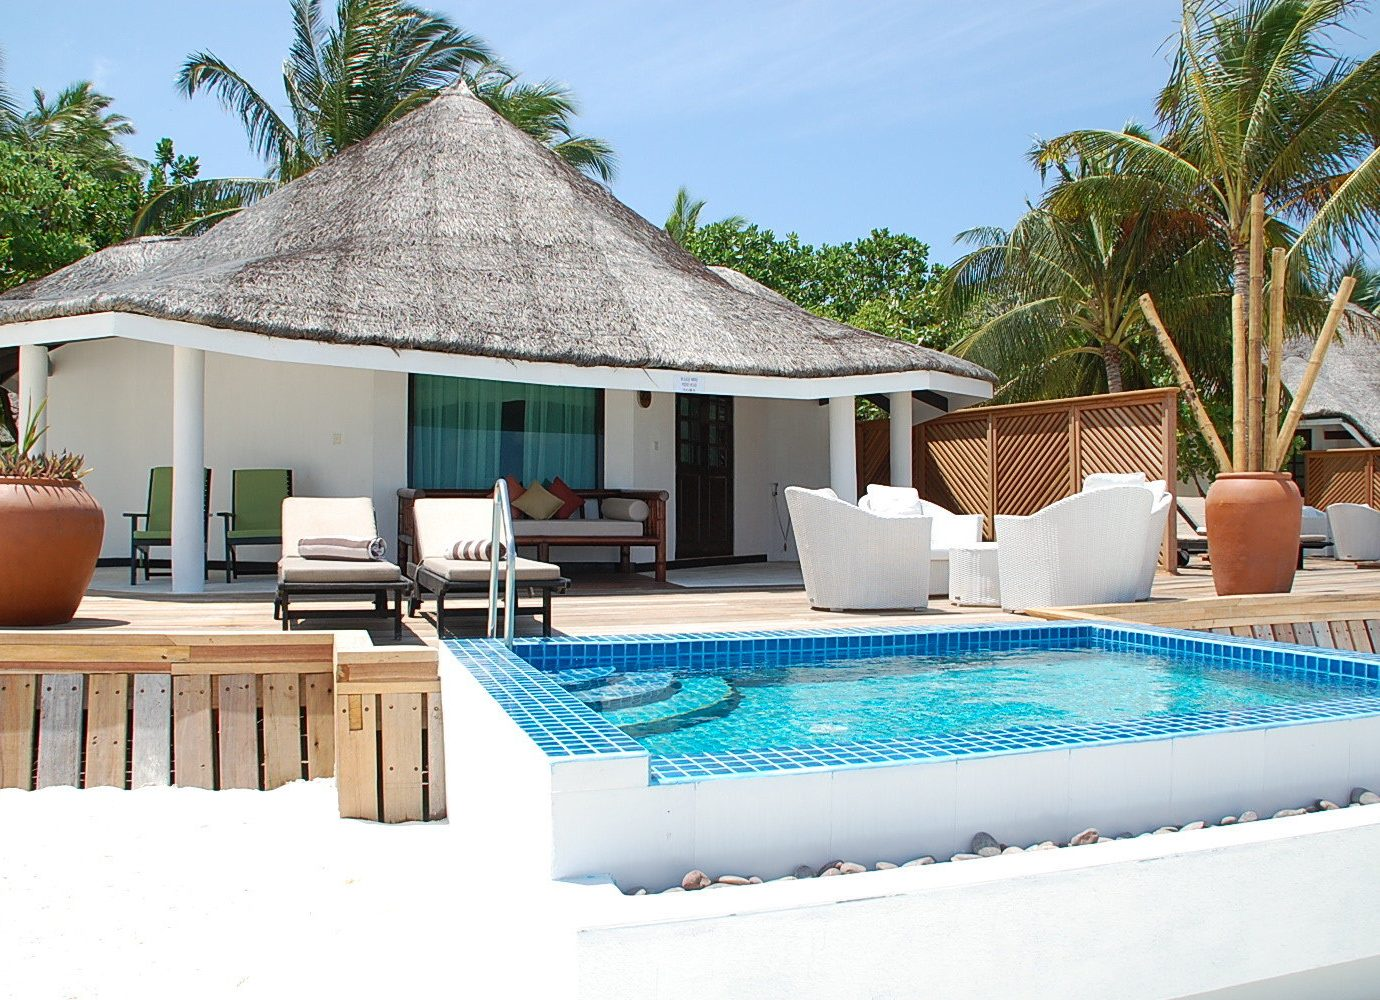 Hotels tree sky outdoor swimming pool property leisure building Villa Resort vacation estate home backyard real estate cottage caribbean